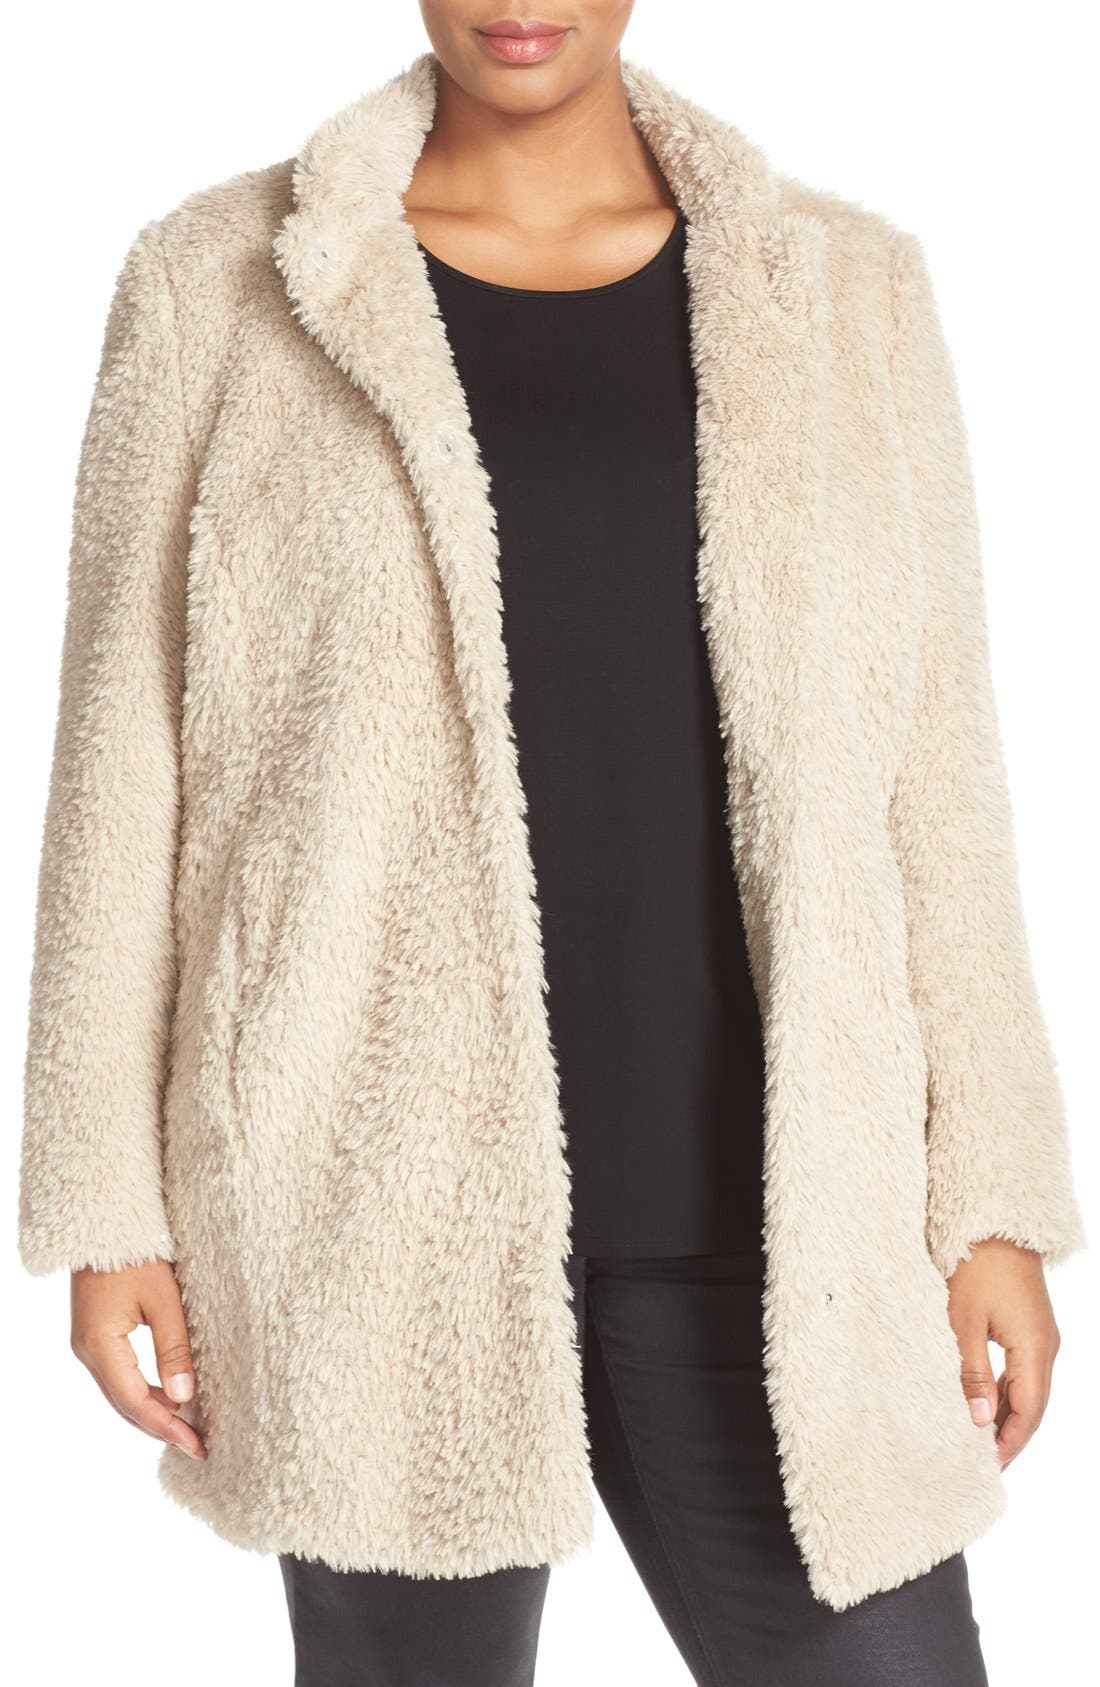 Kenneth Cole New York 'Original Teddy' Faux Fur Coat (Plus Size)